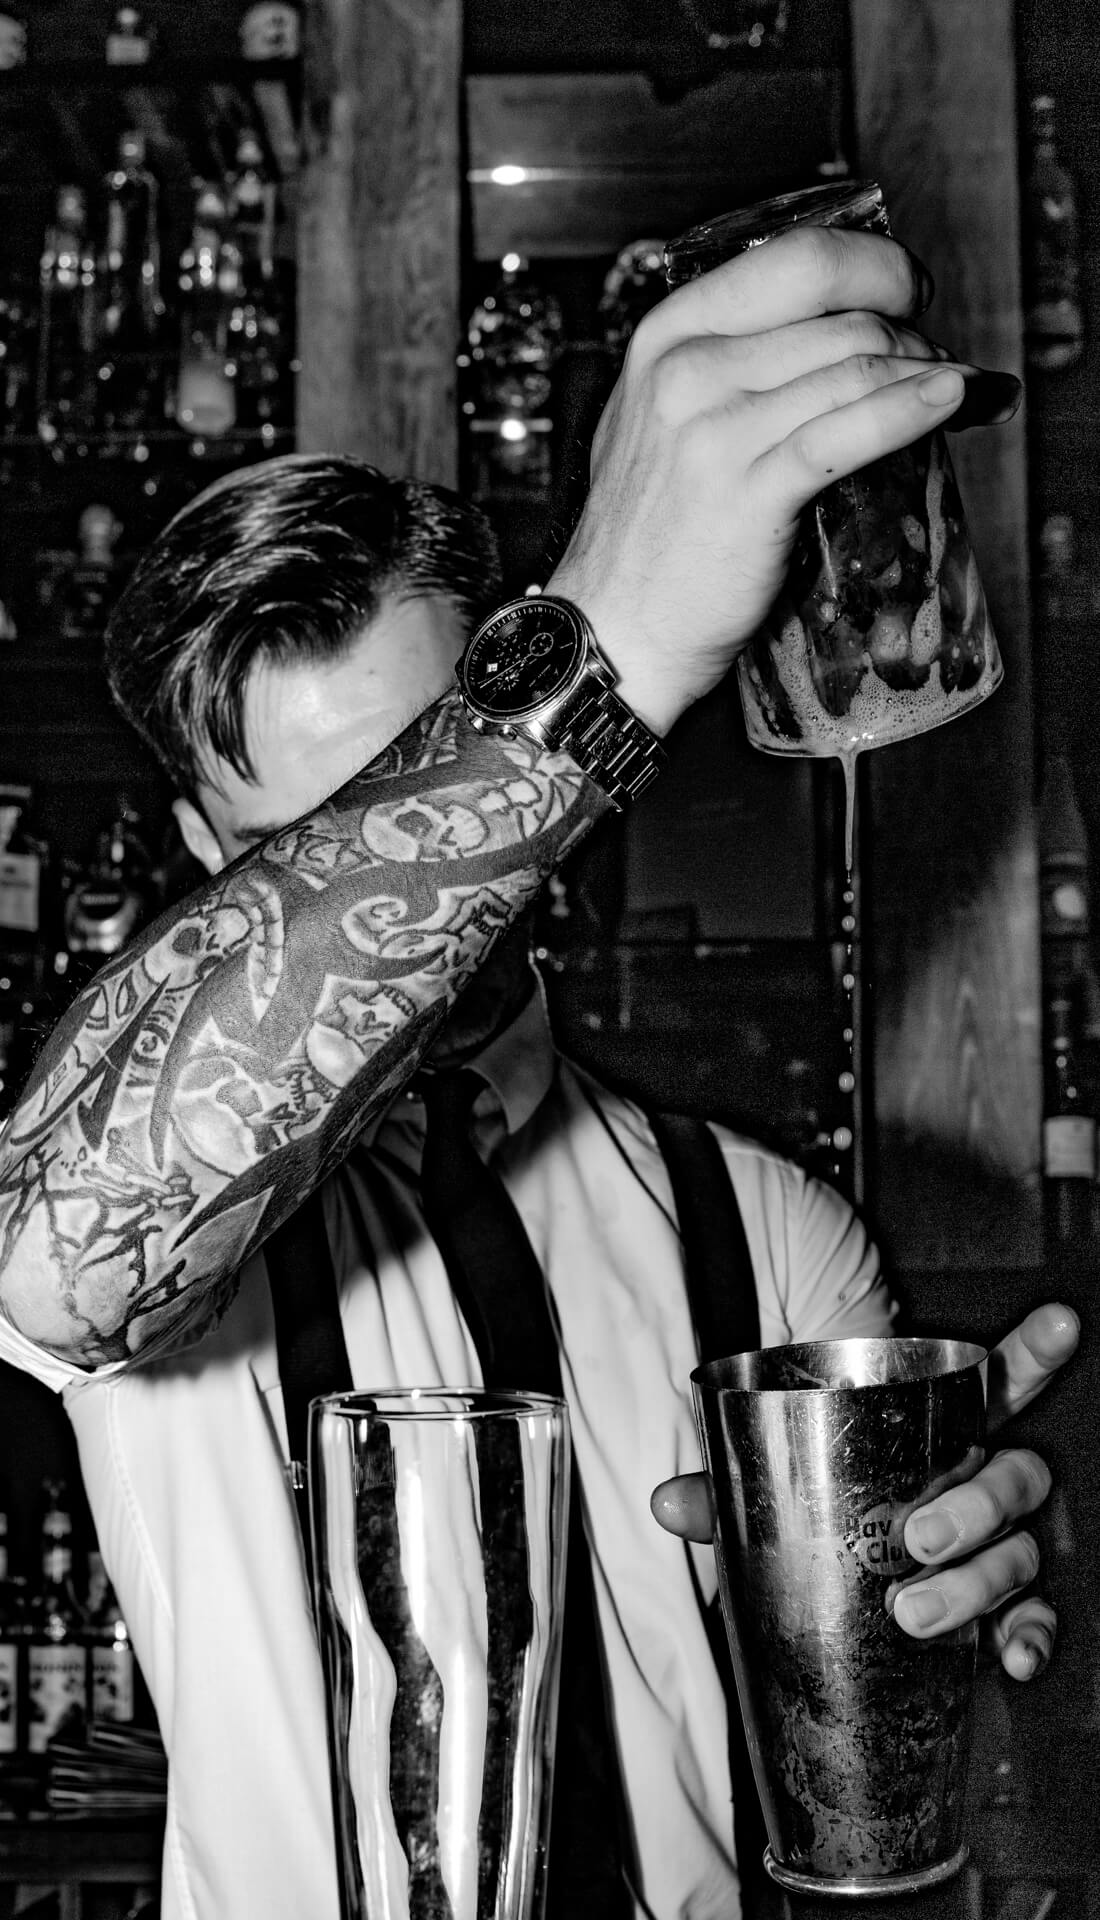 Action image of a tattooed bartender making a drink. Marketing photography for food and drink caterer in Birmingham UK